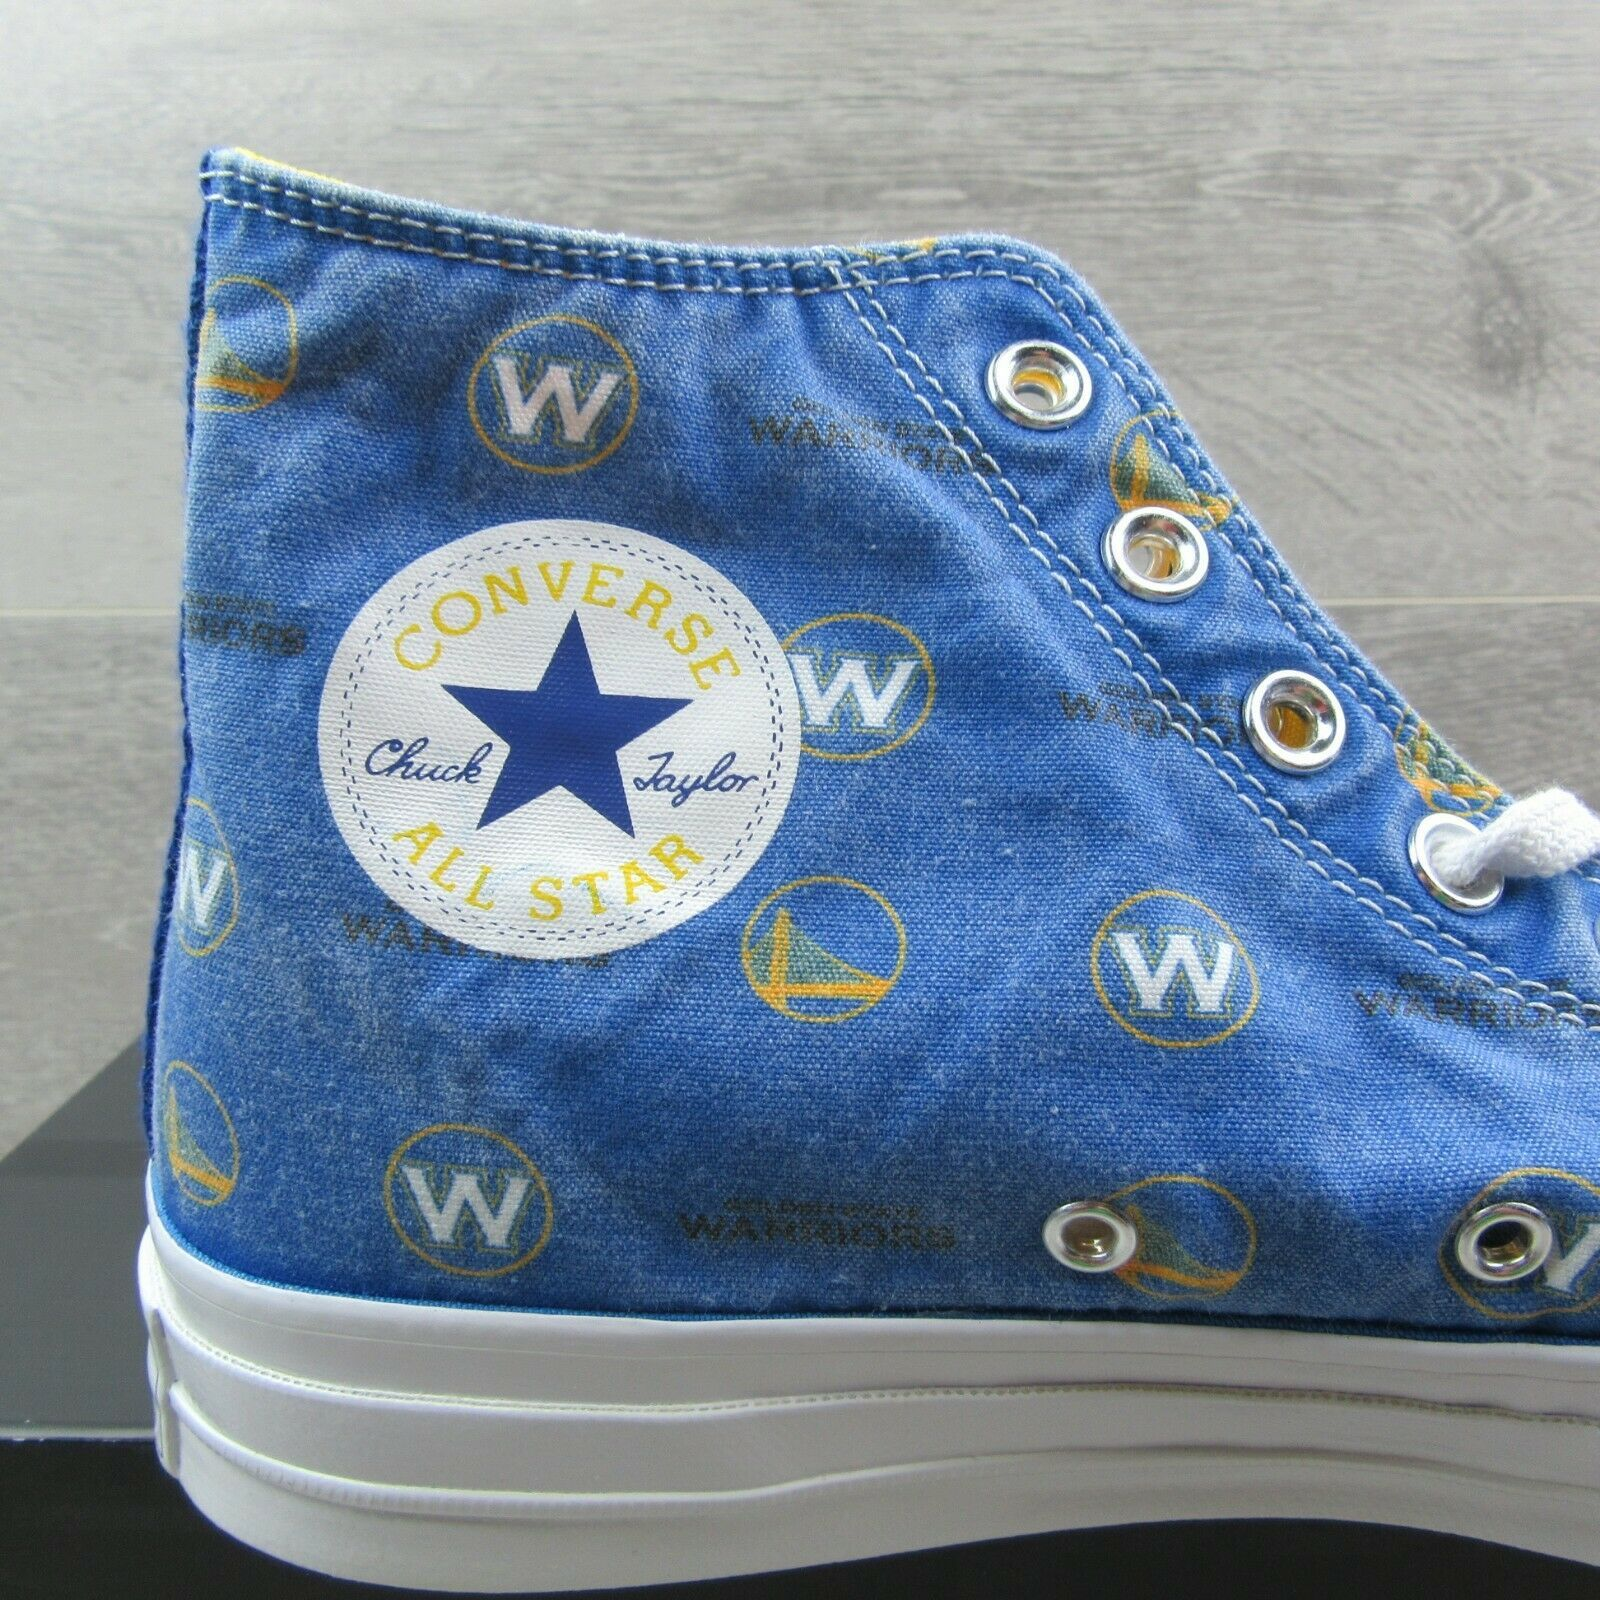 Converse Chuck Taylor AS 70 Hi Golden State Warriors Size 10 Mens 161161C